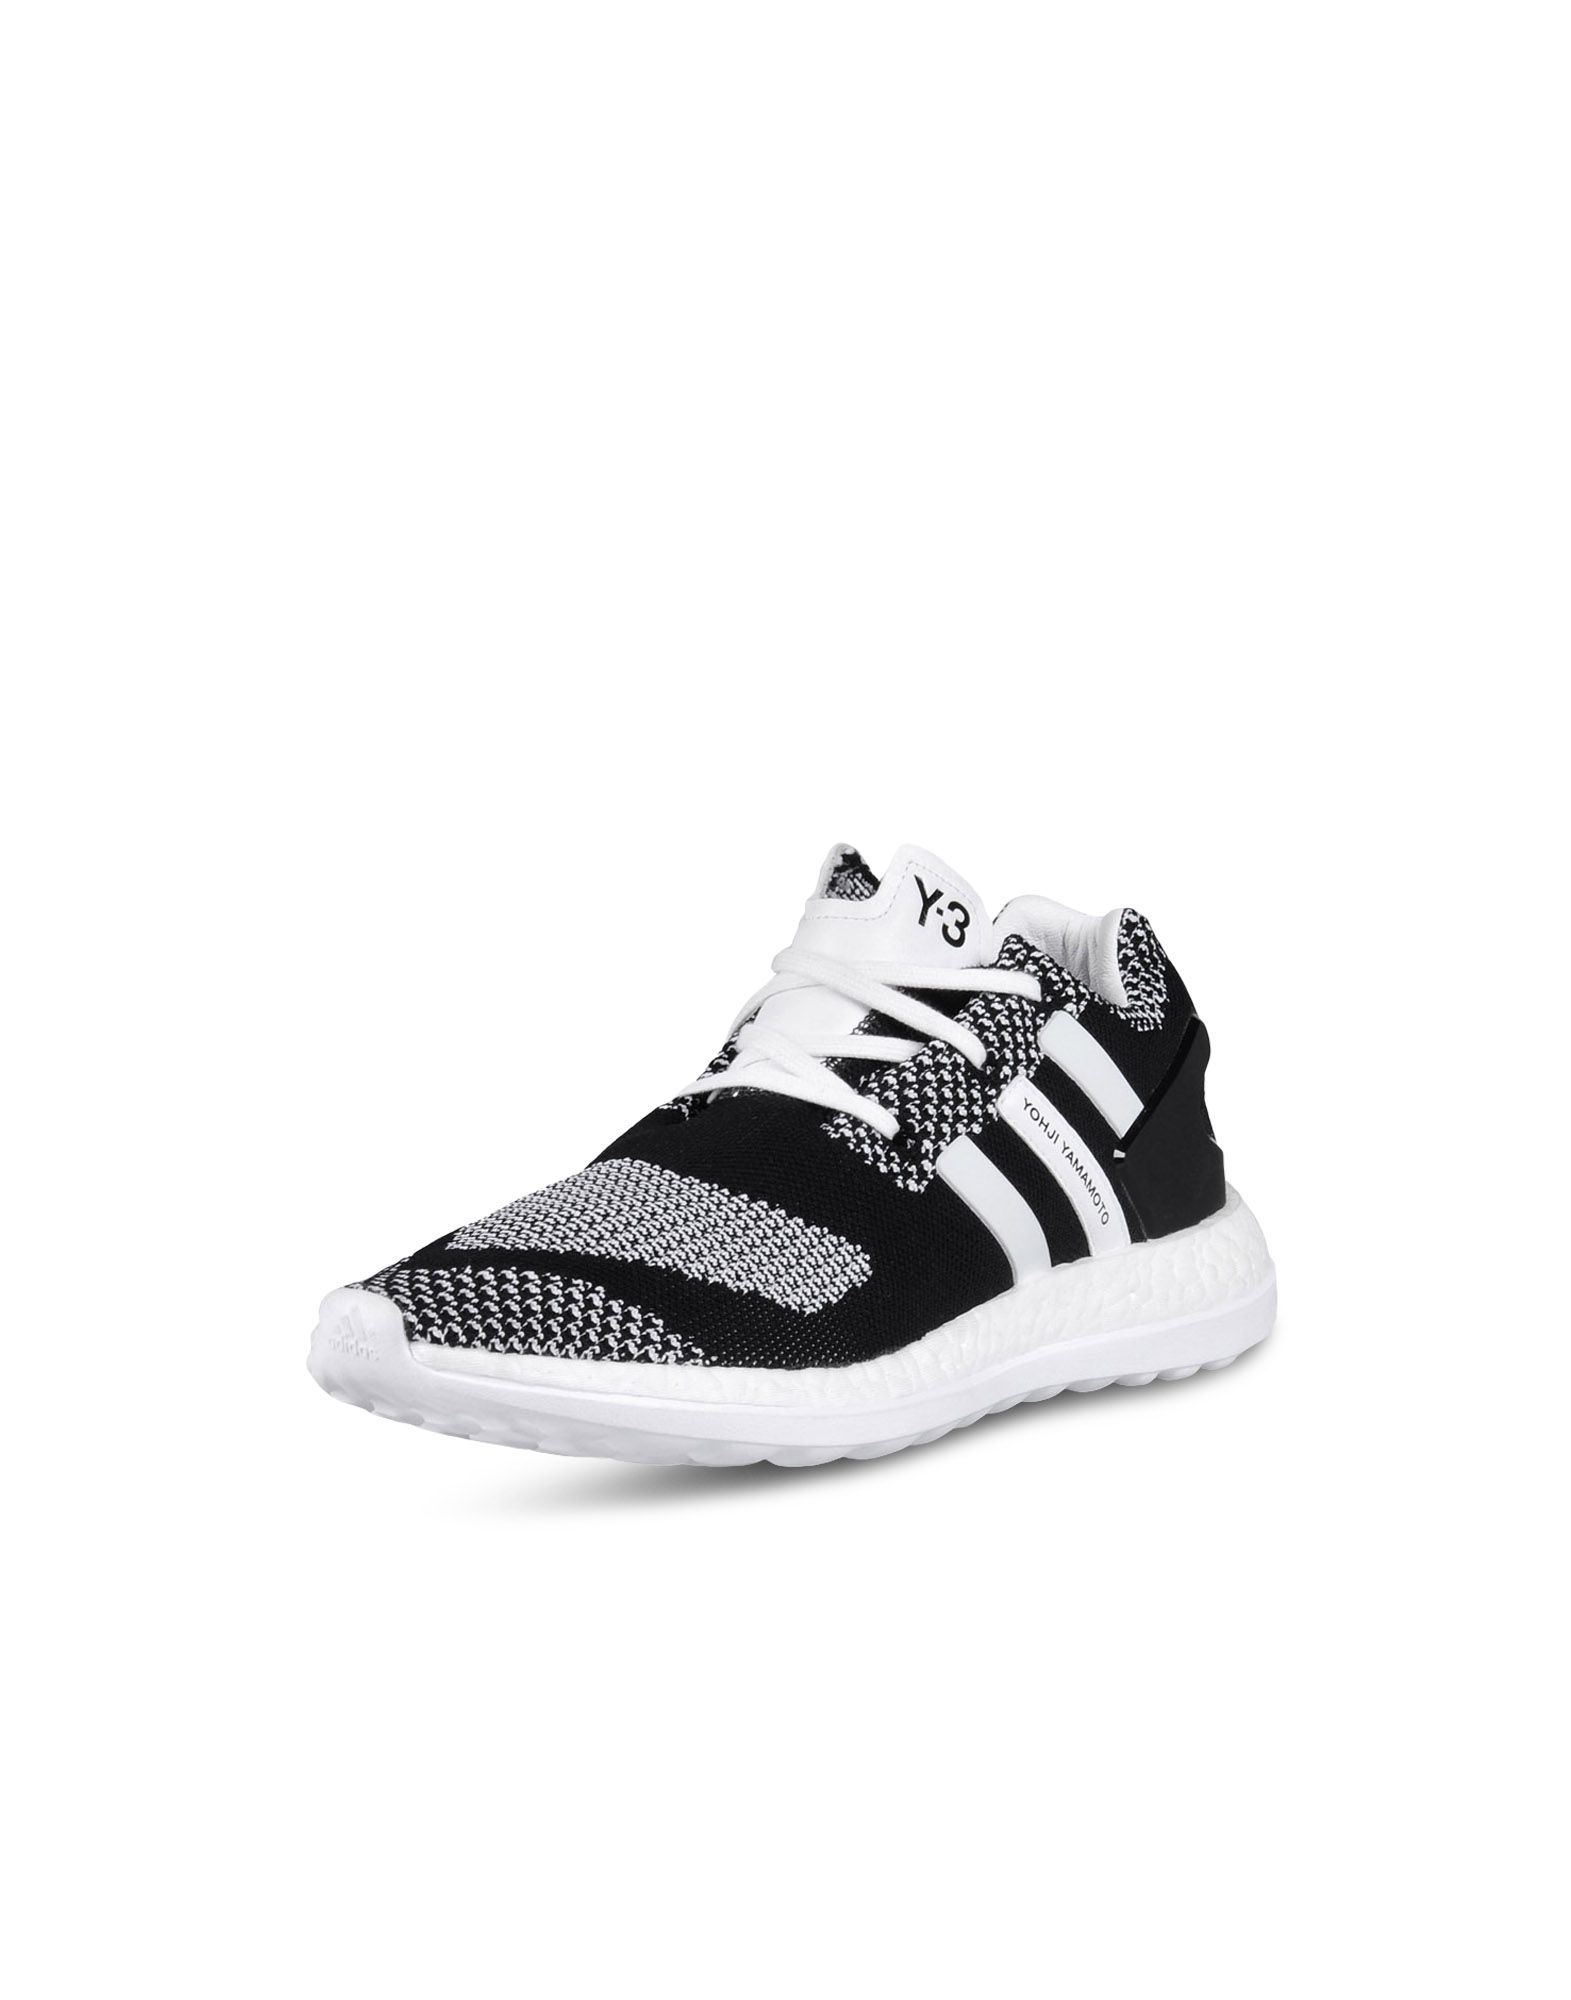 b171f0df67e44 REALLY in love with these -- Y-3 PURE BOOST ZG KNIT SHOES man Y-3 adidas